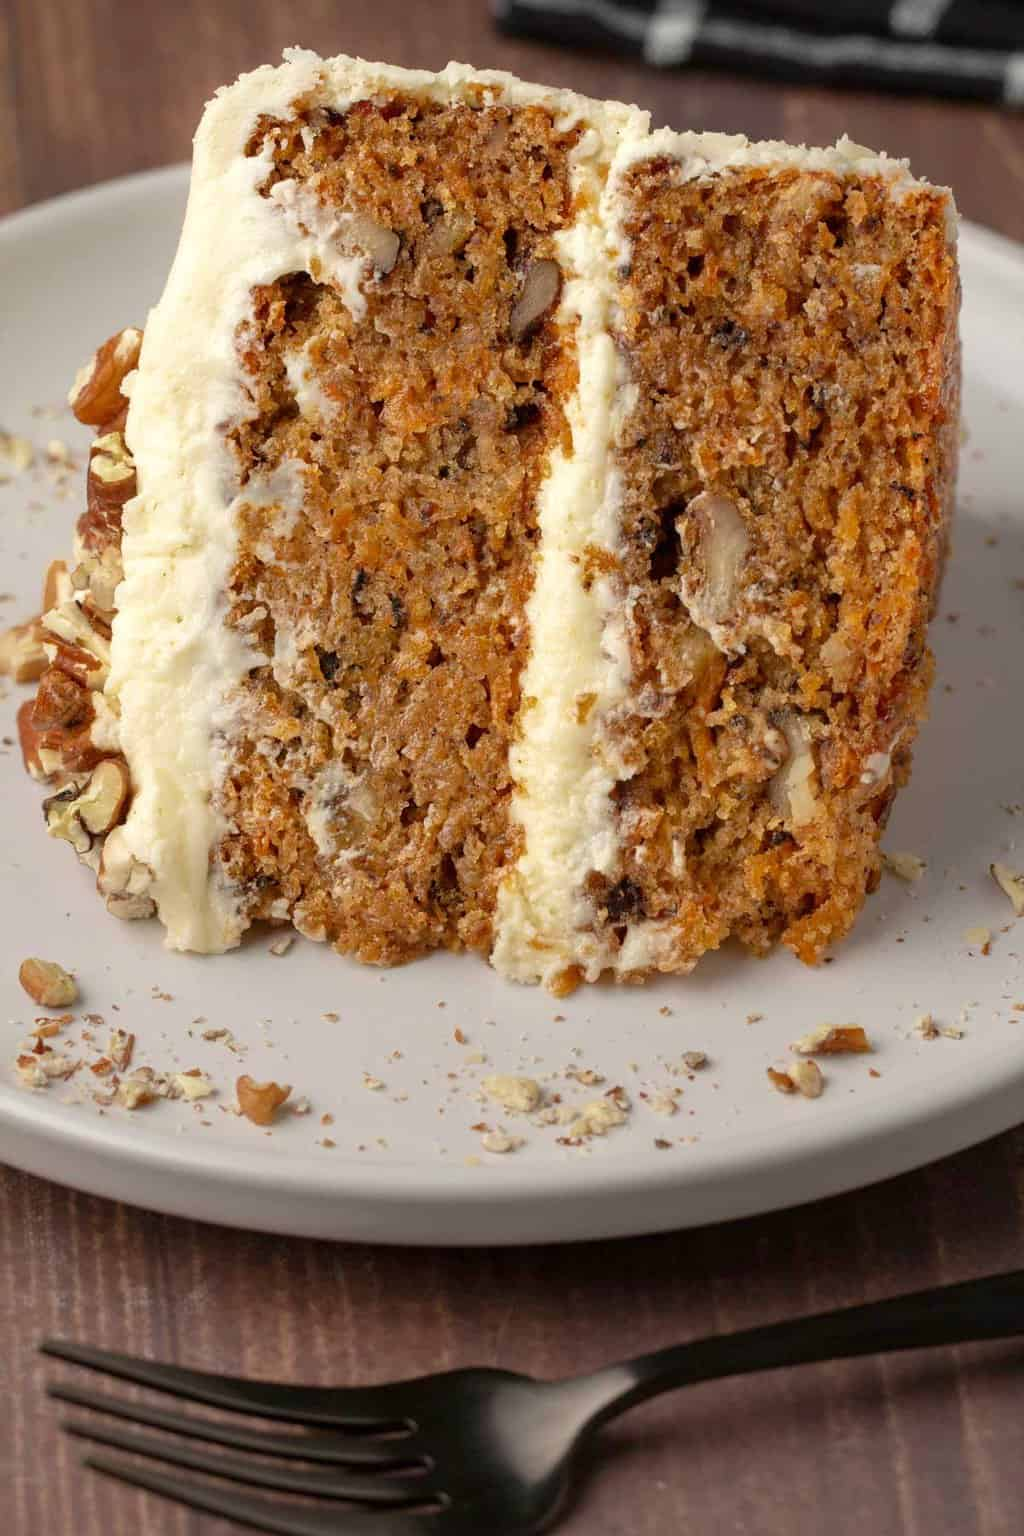 Slice of vegan gluten free carrot cake on a white plate.